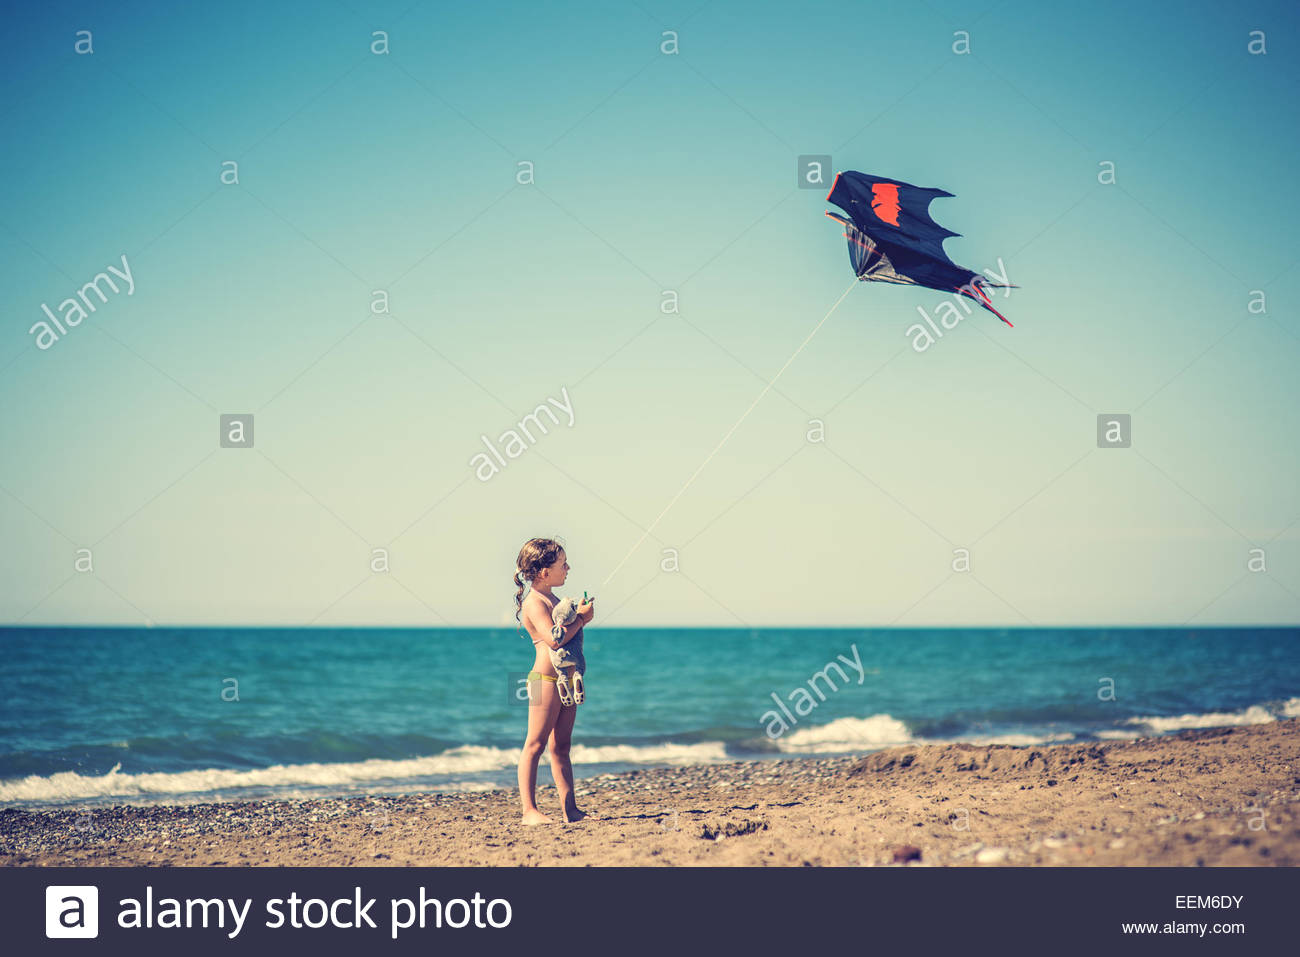 Girl flying kite on sandy beach - Stock Image